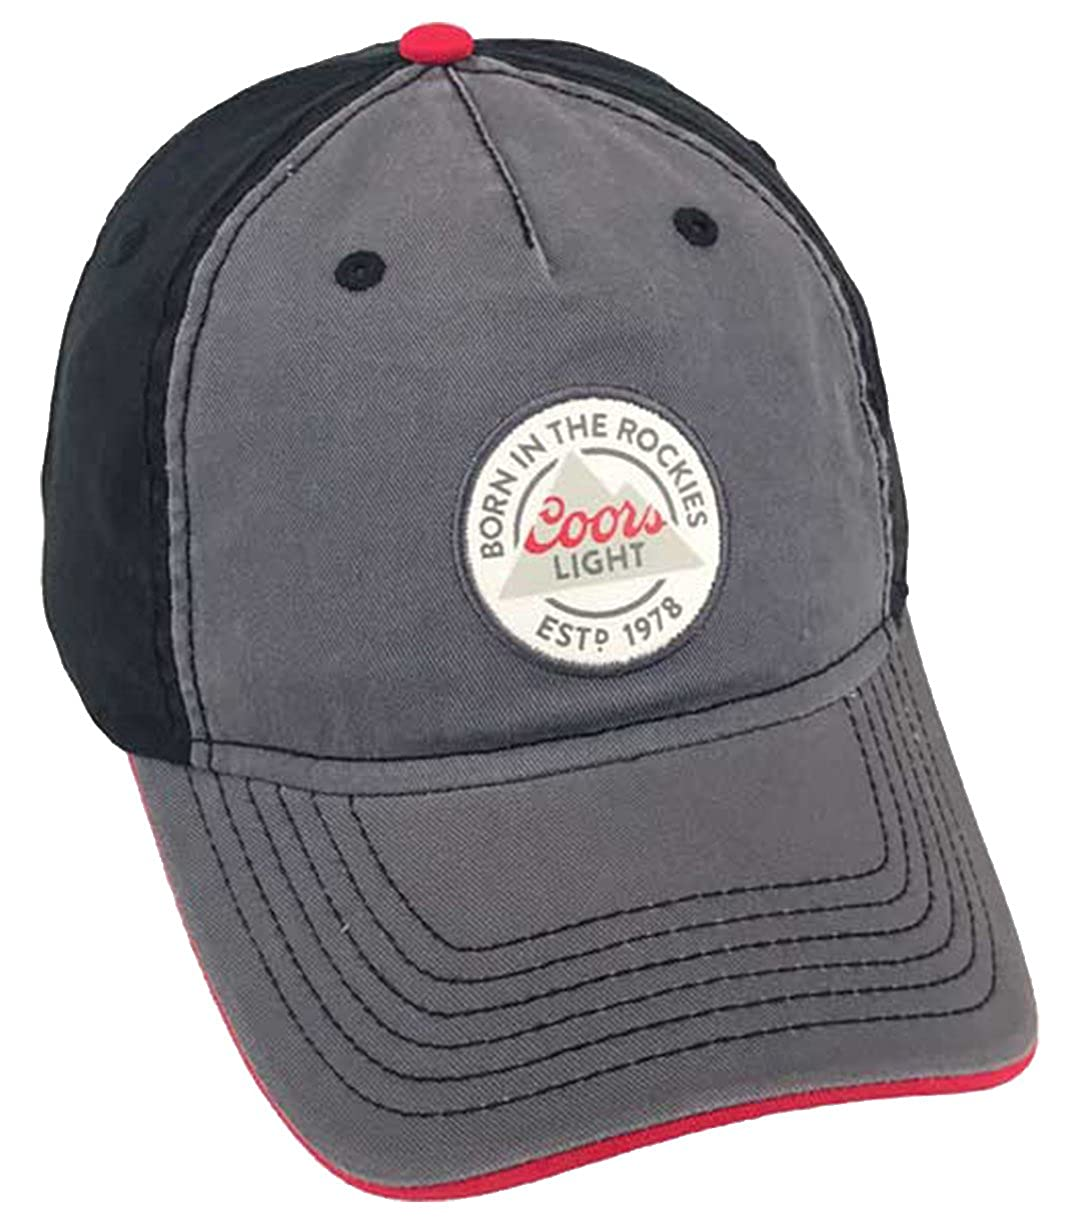 Circle Logo Hat 8 x 7in Coors Light